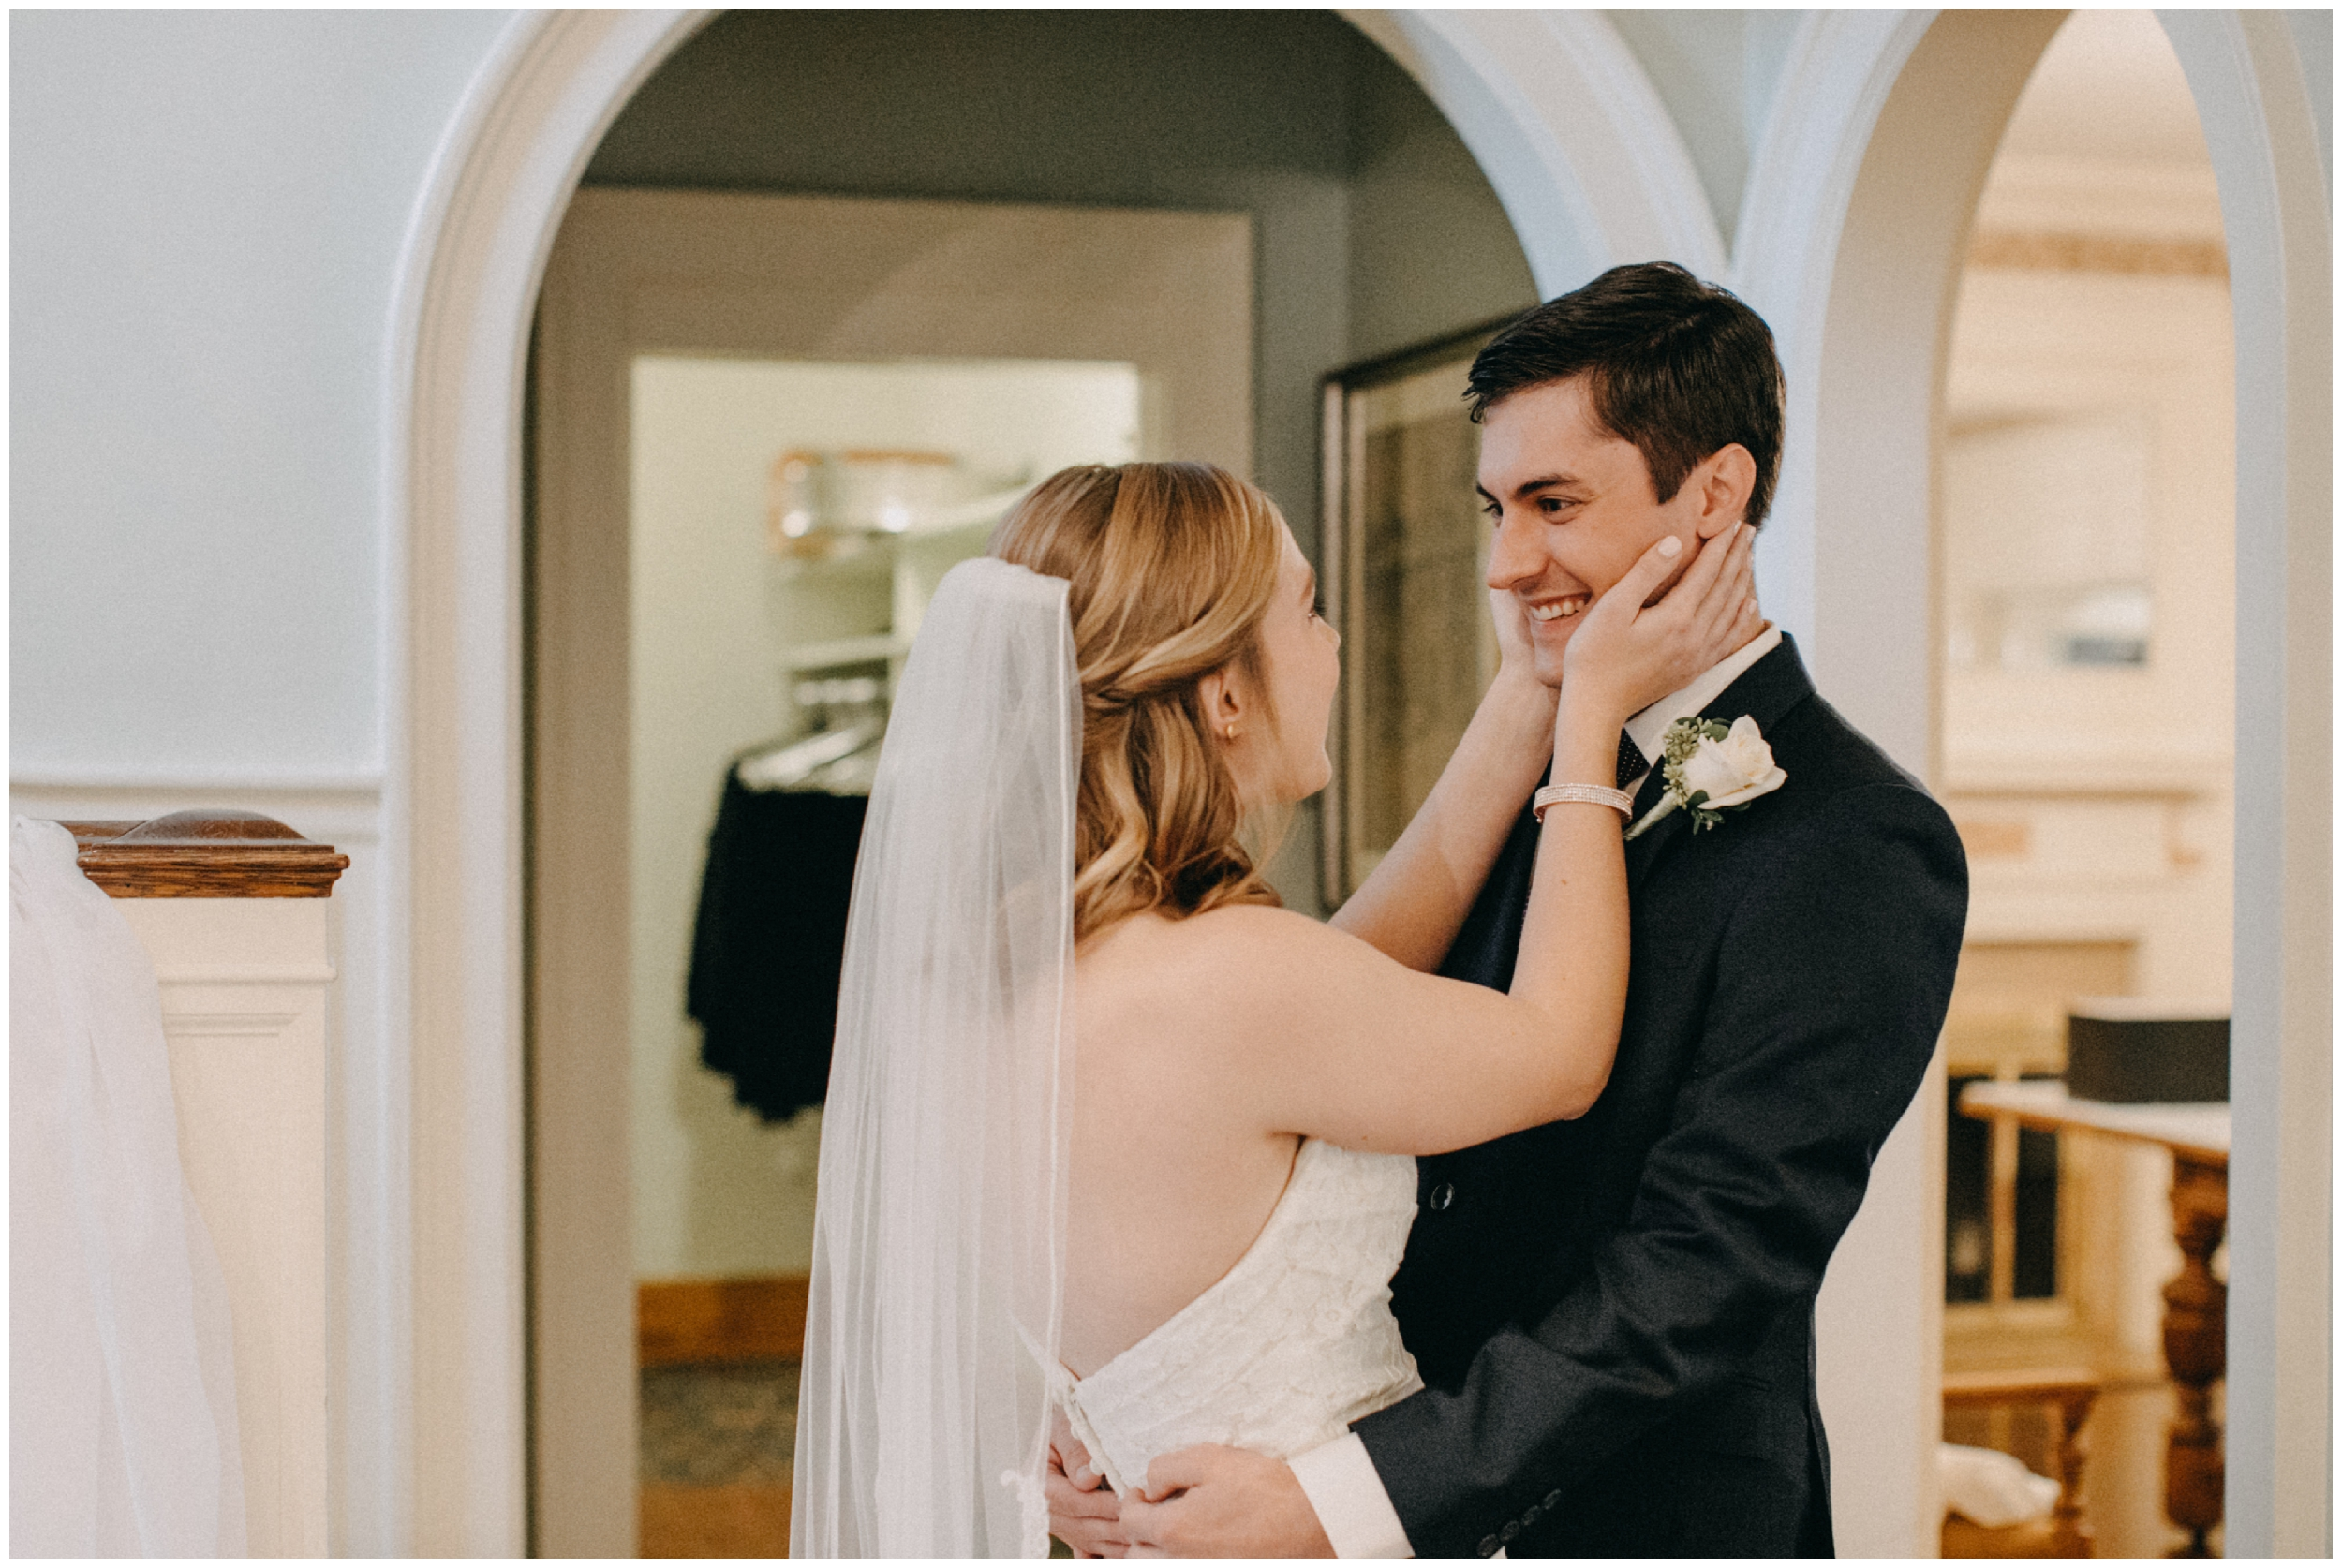 Classic and chic wedding at the St Paul College Club